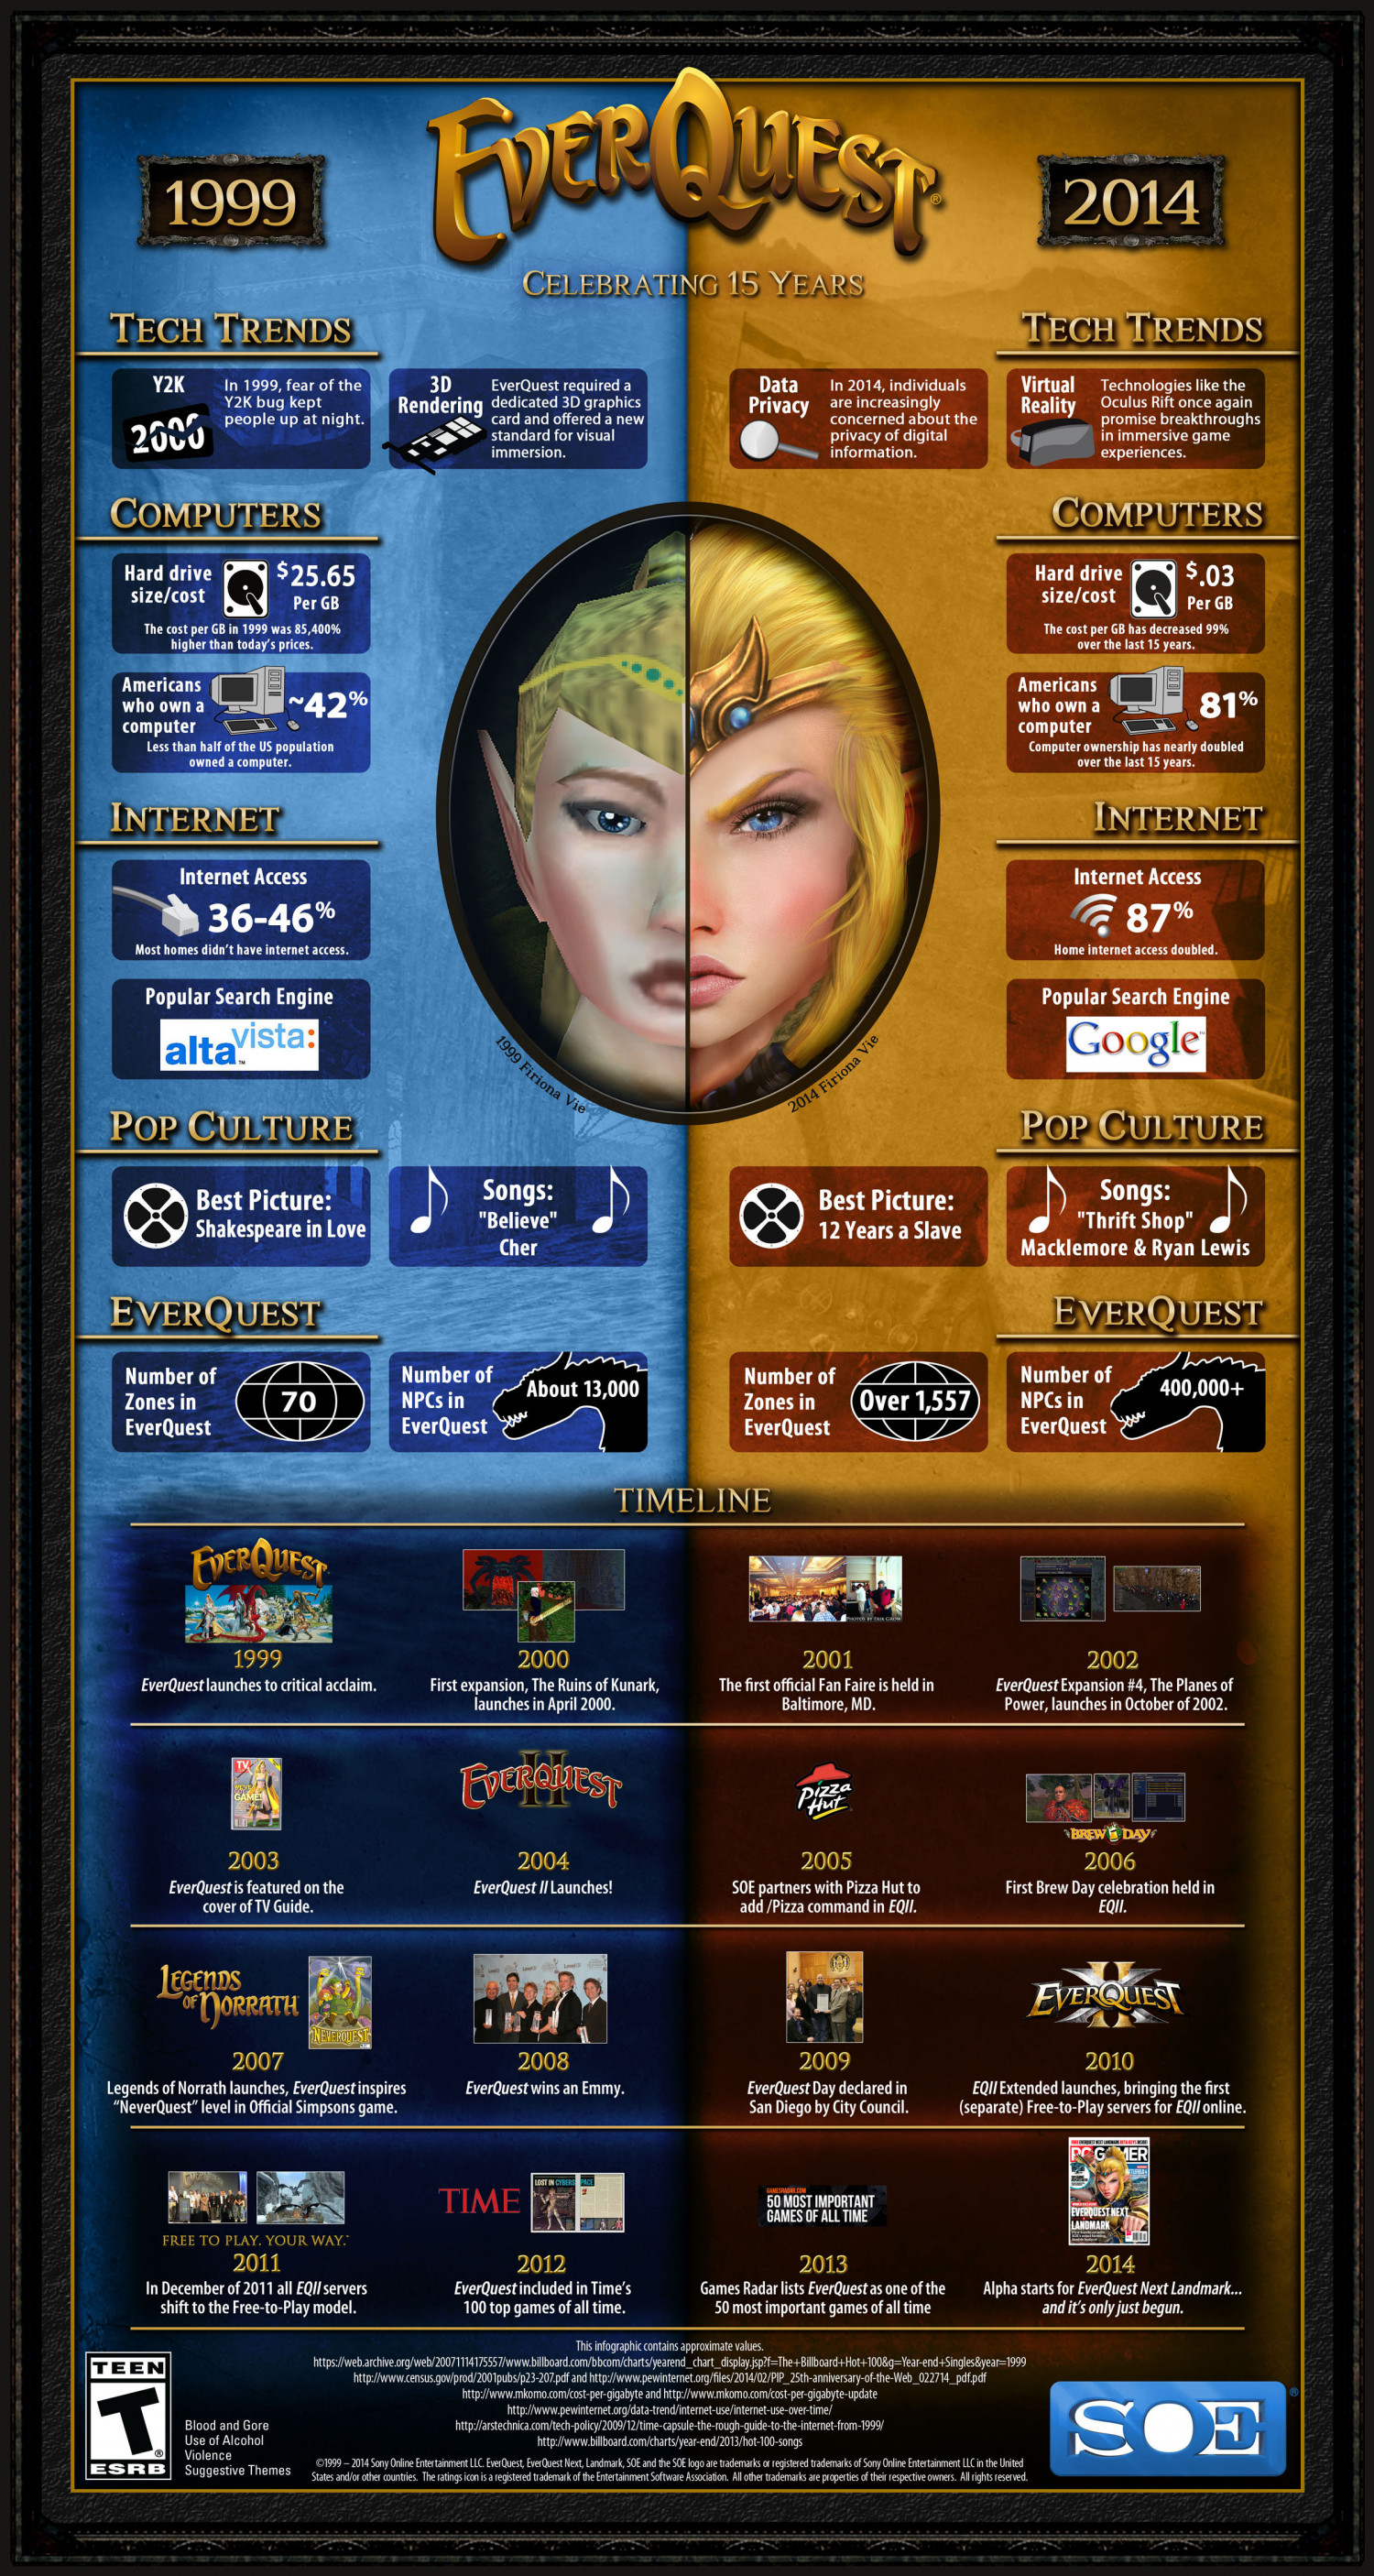 EverQuest: Celebrating 15 Years Infographic